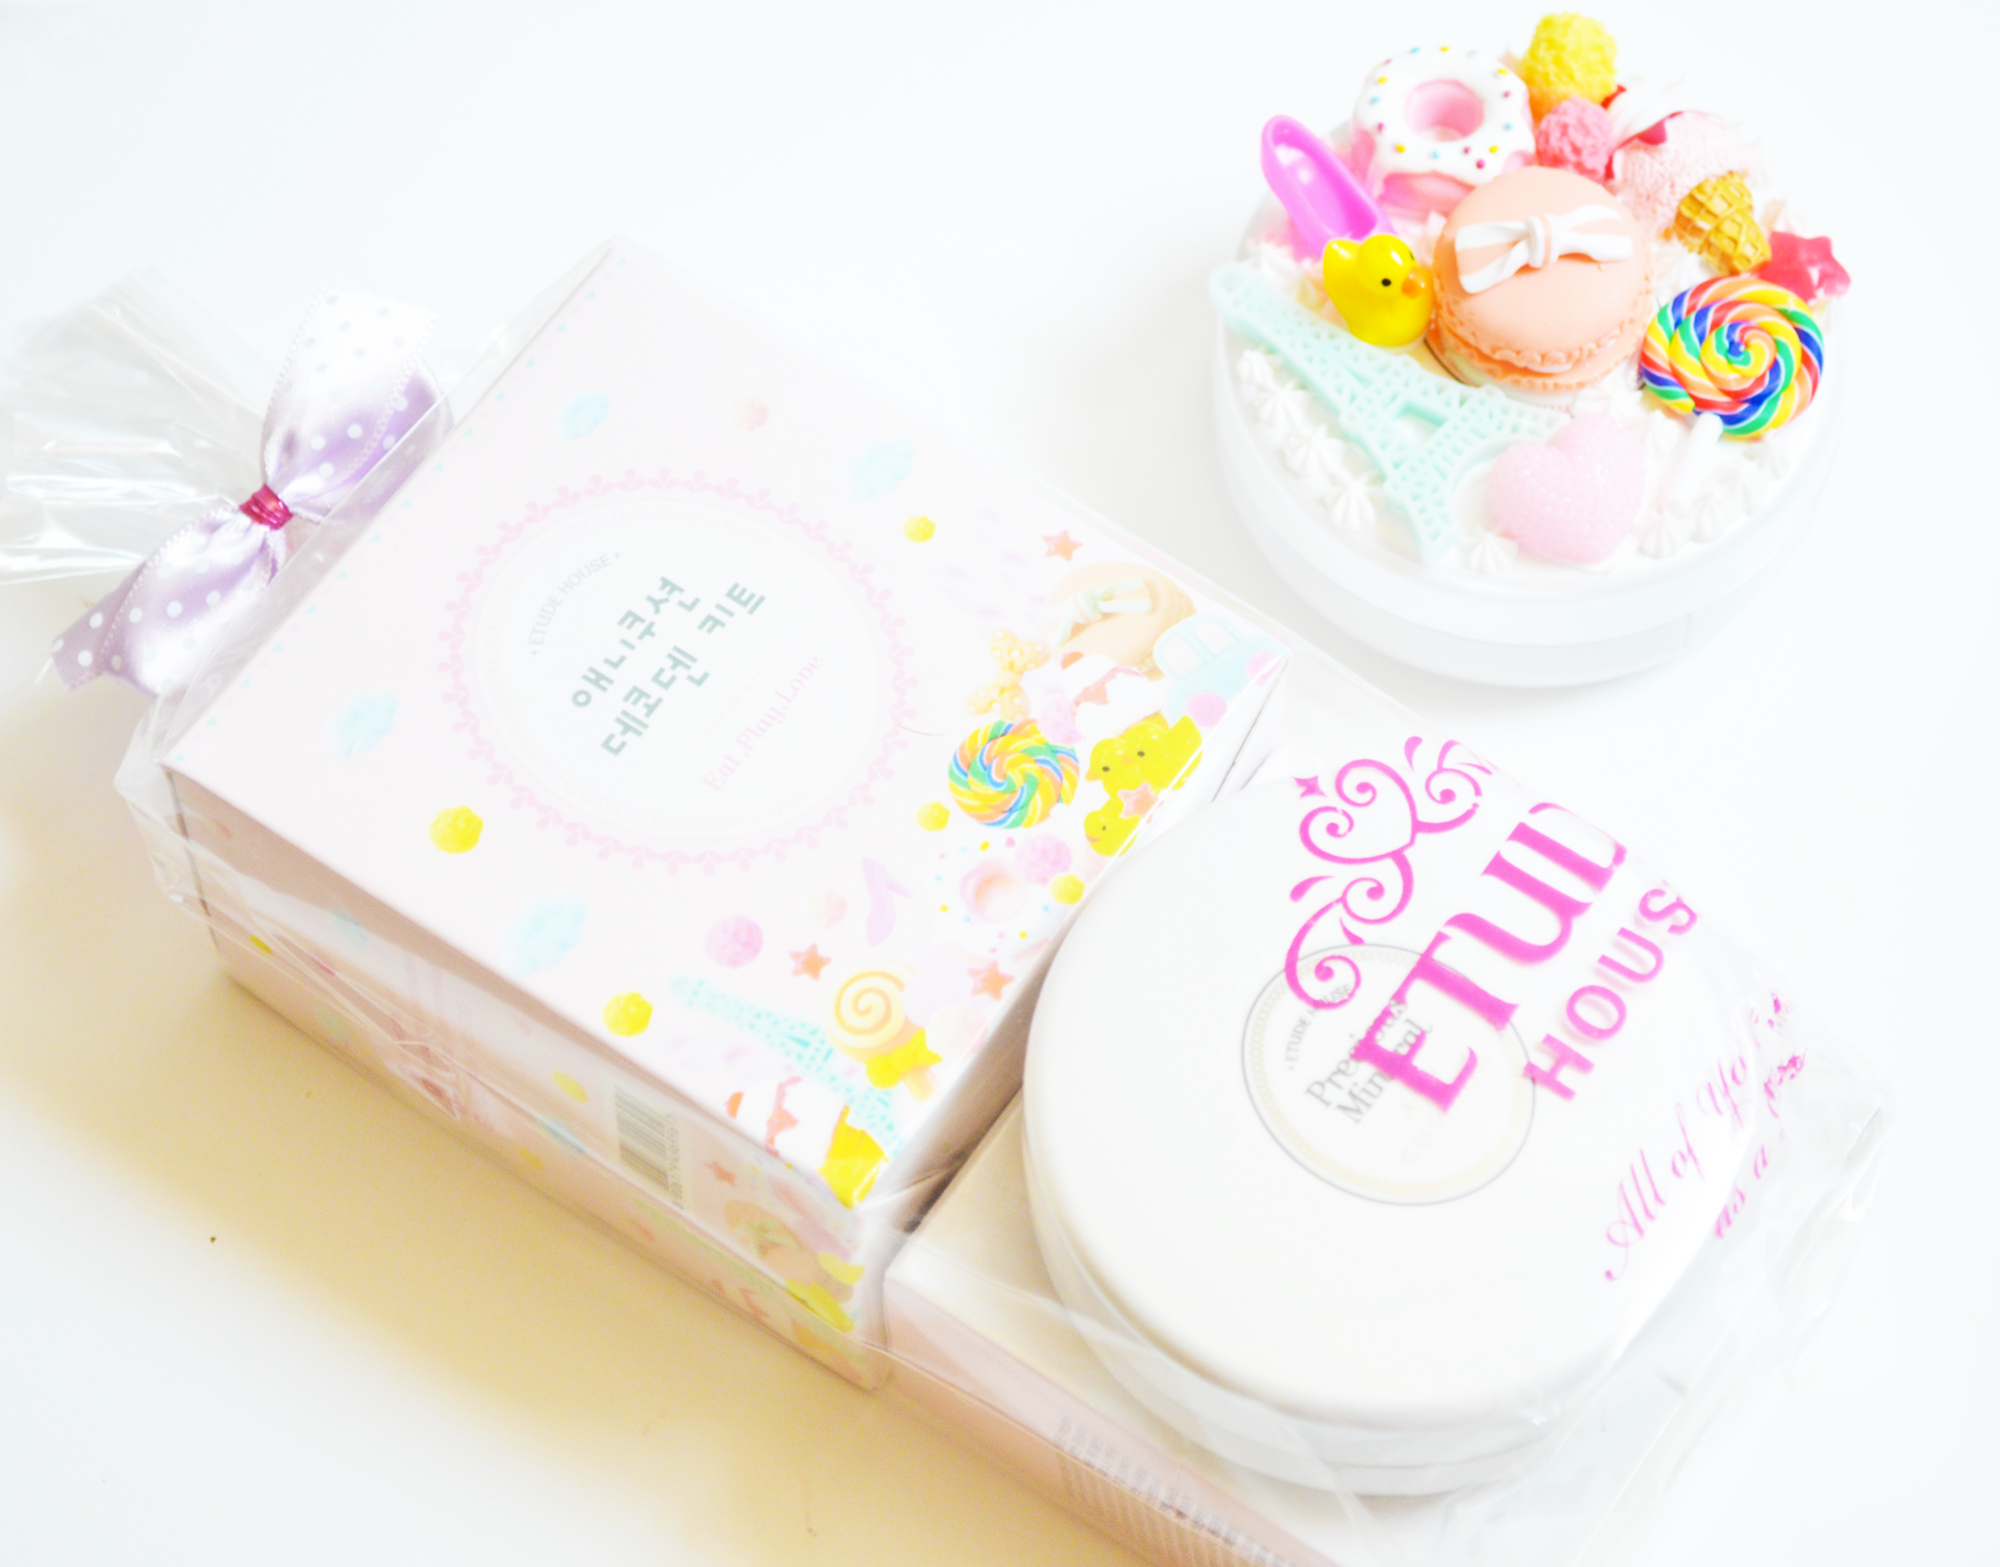 cushion-cream-etude-house-precious-mineral-any-cushion-pearl-aura-decoden-kit-giveaway